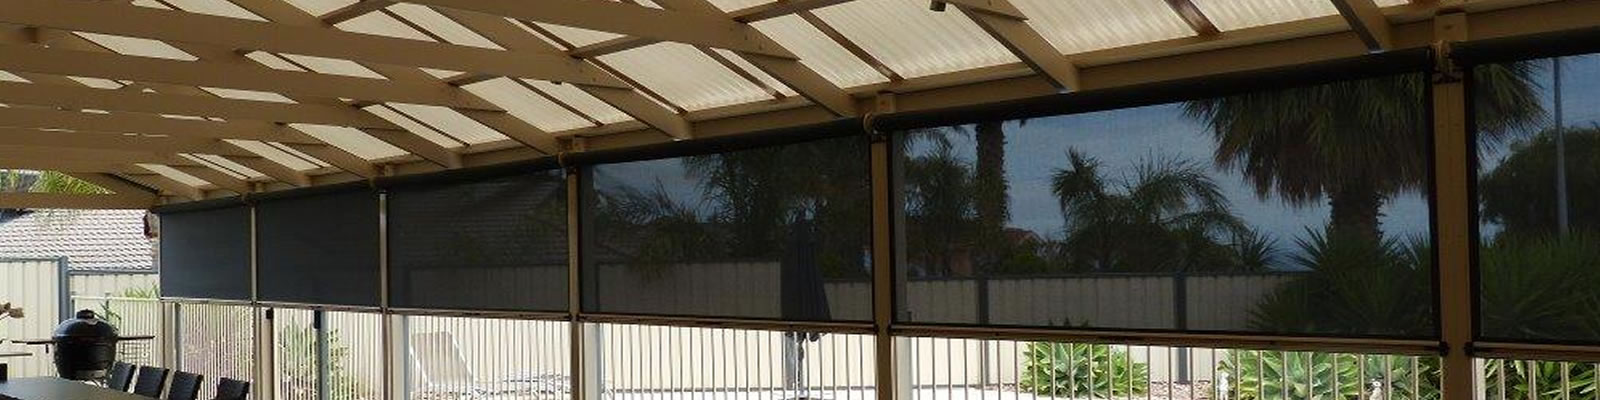 Barrys Affordable Blinds Awnings Shutters Port Stephens